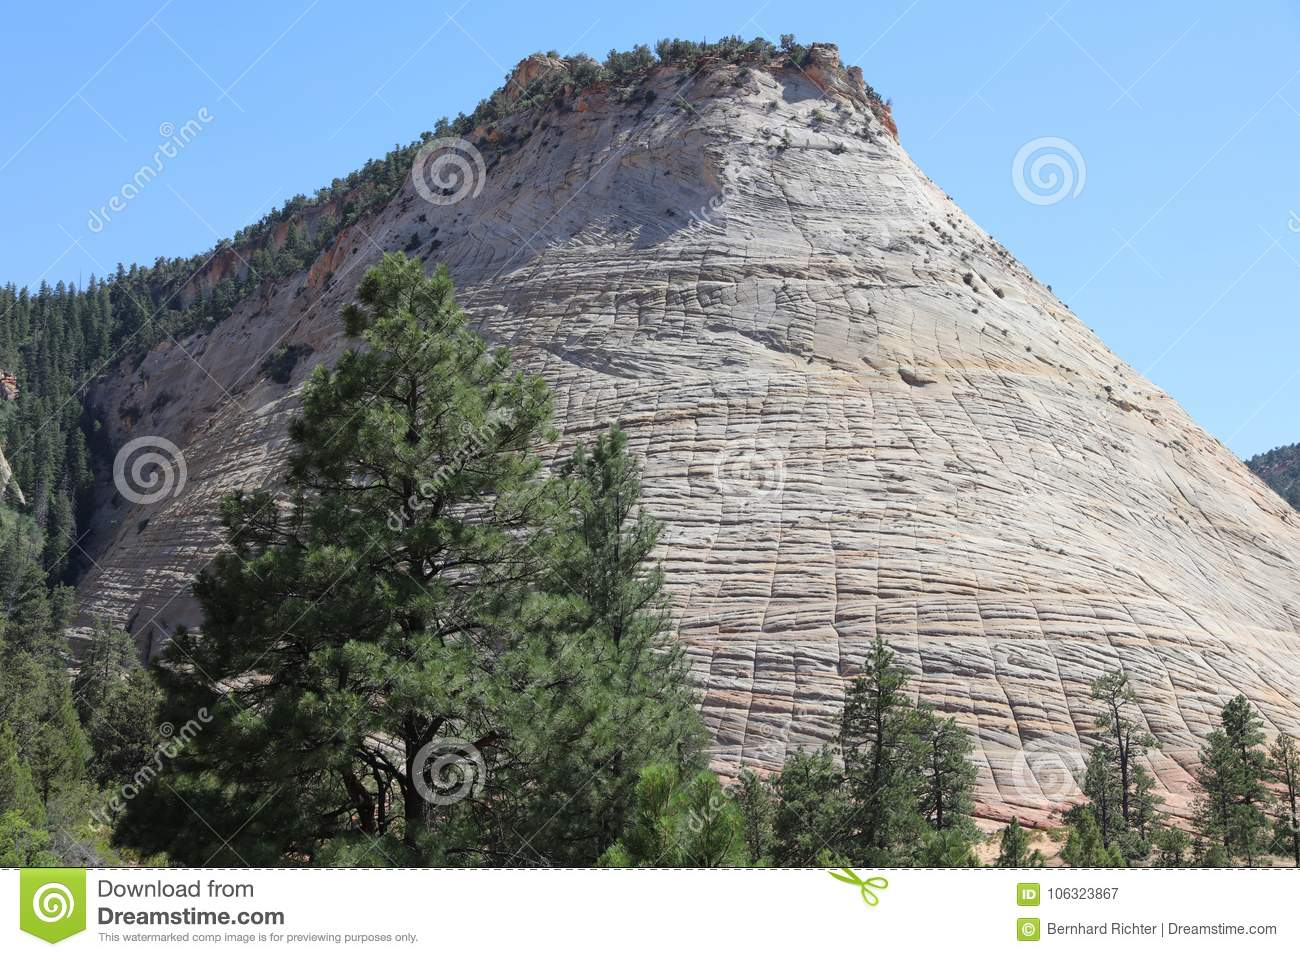 checkerboard mesa zion national park utah constructive or destructive